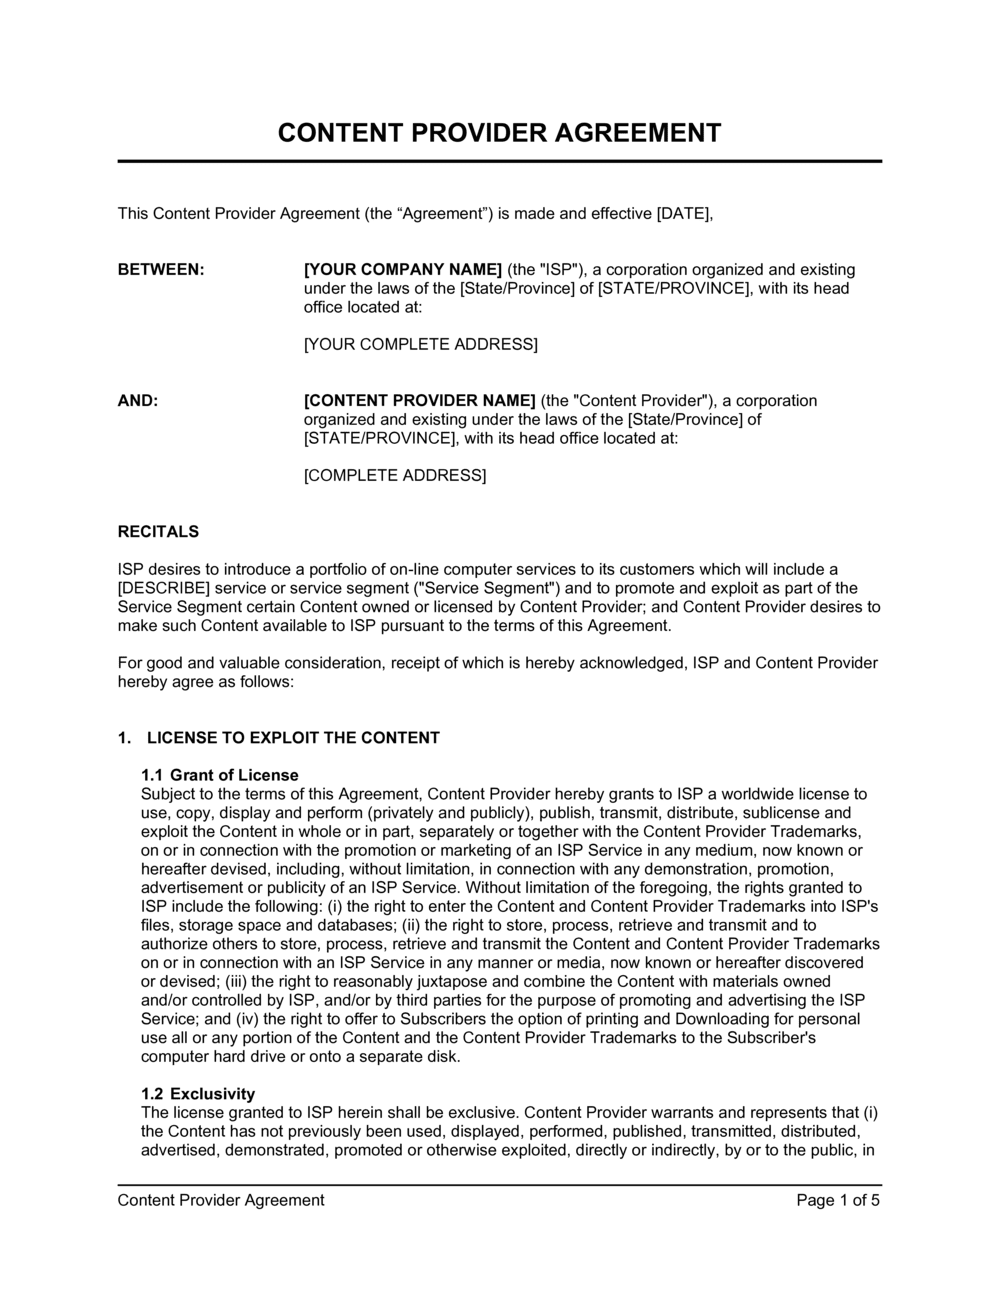 Business-in-a-Box's Content Provider Agreement Template